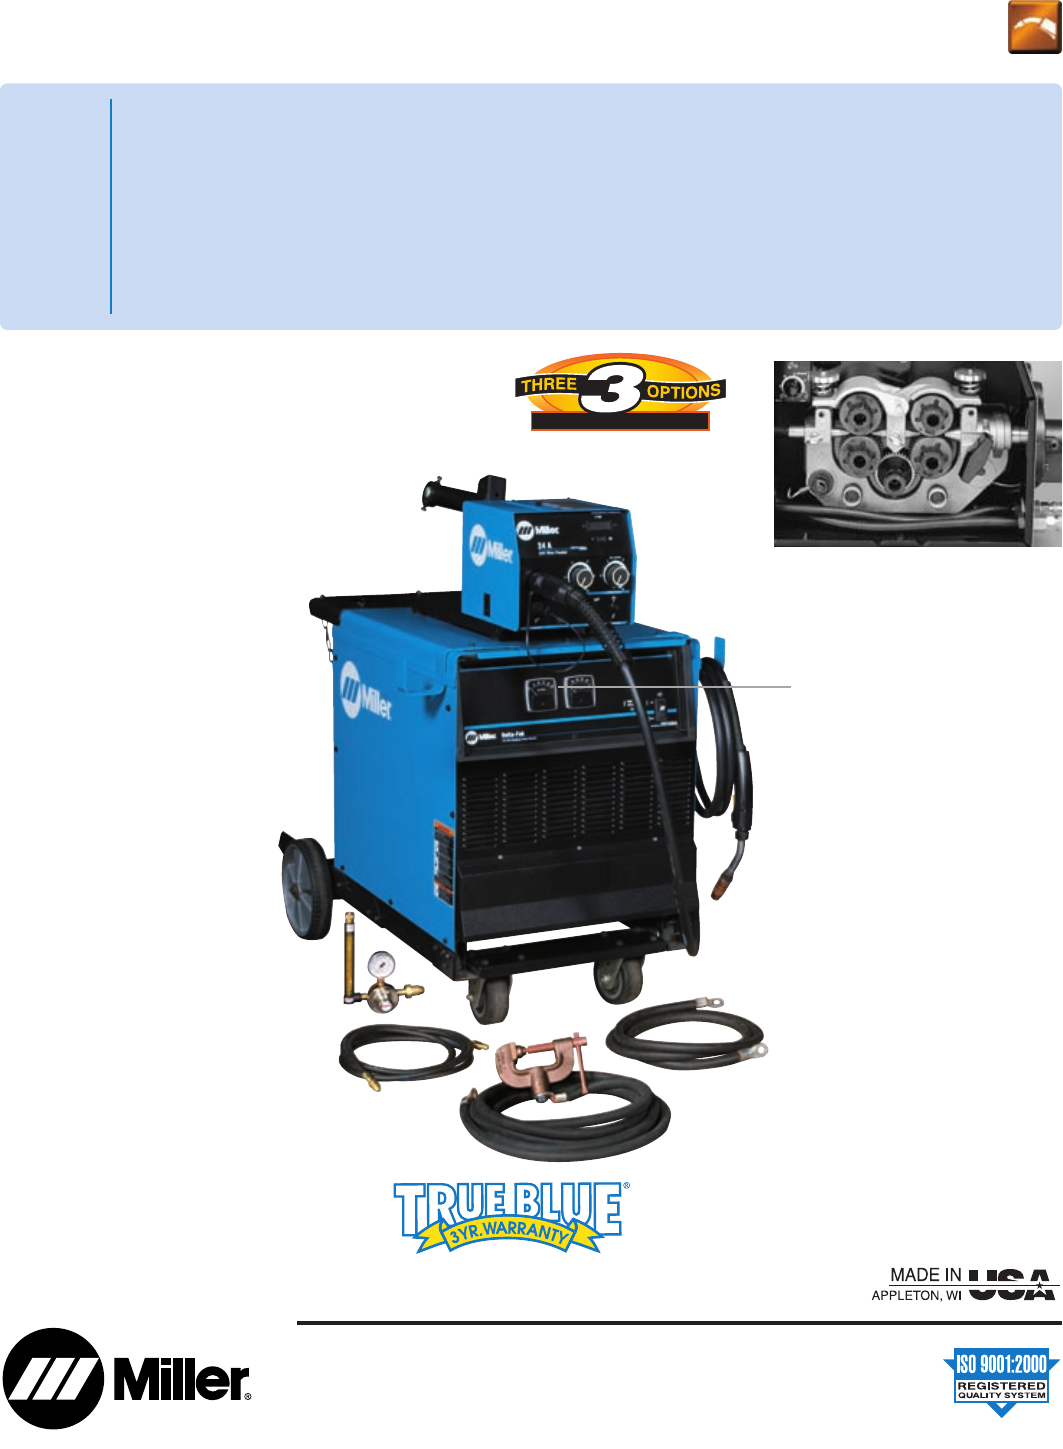 Miller electric welder deltaweld series user guide - Webaccess leroymerlin fr ...